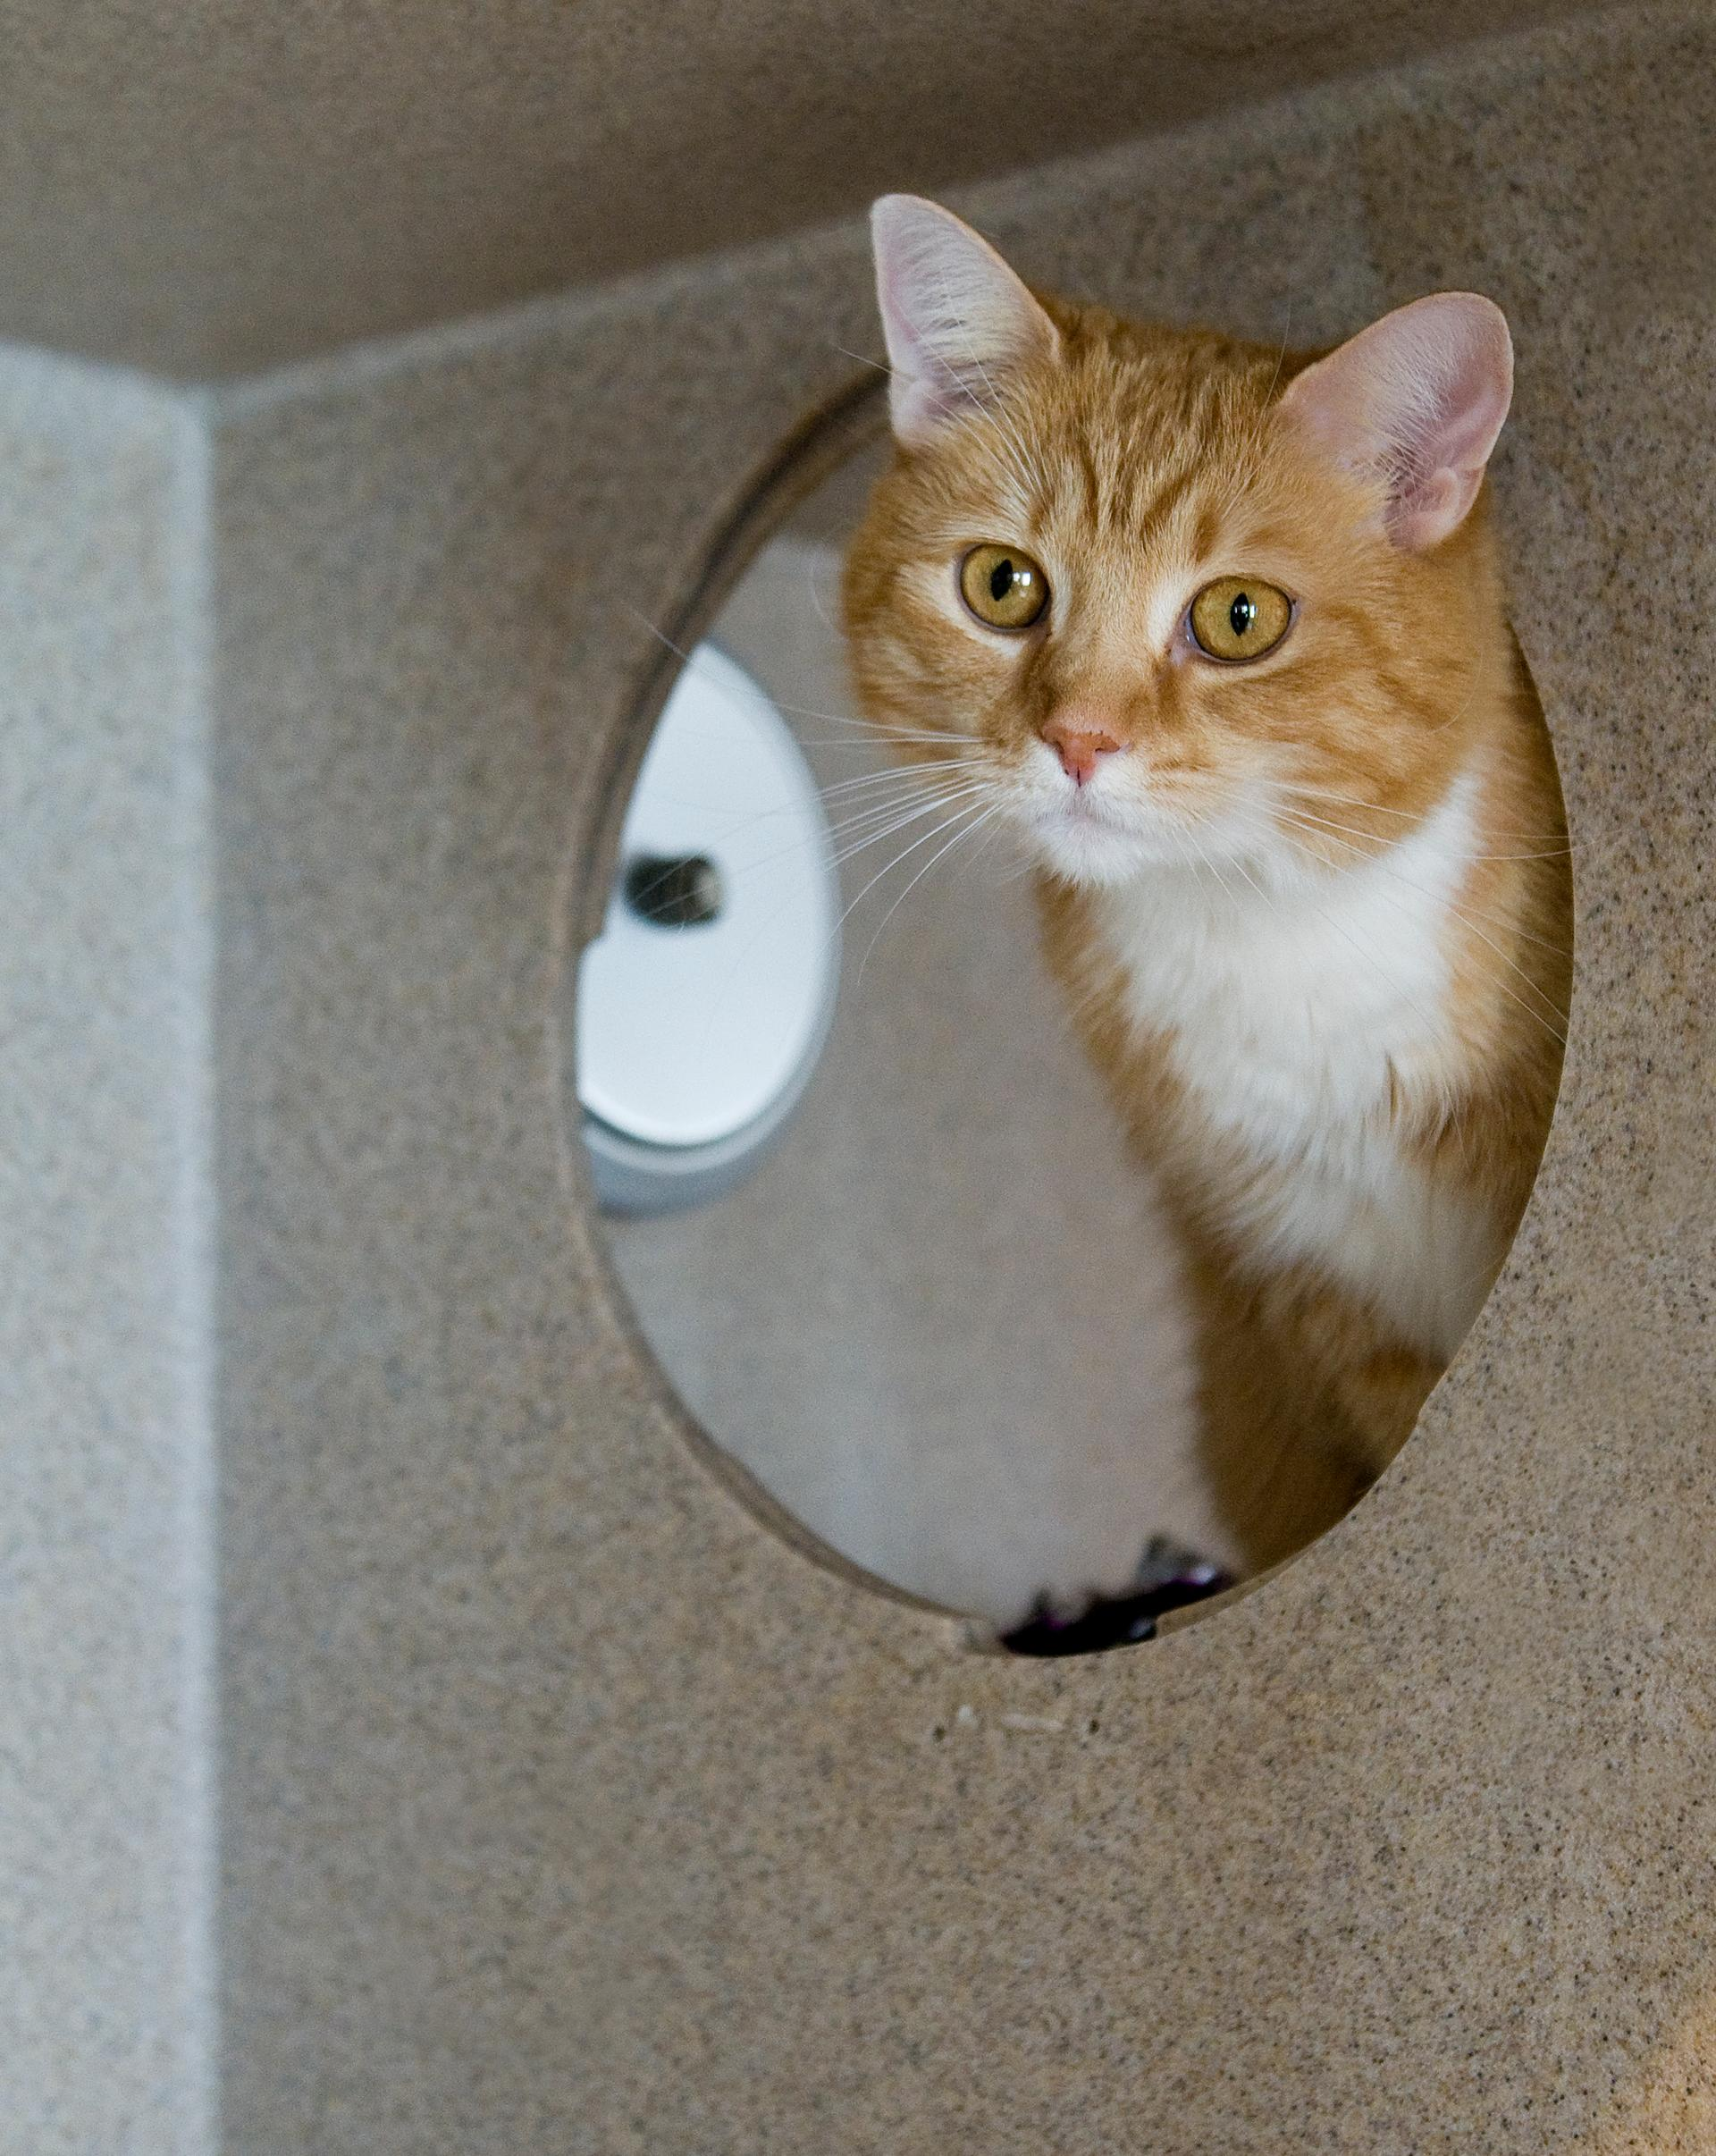 This orange and white beauty is looking for a new home after her owners could no longer care for her. Her friendly, playful demeanor has quickly made her a favorite with staff and volunteers. (Humane Rescue Alliance)